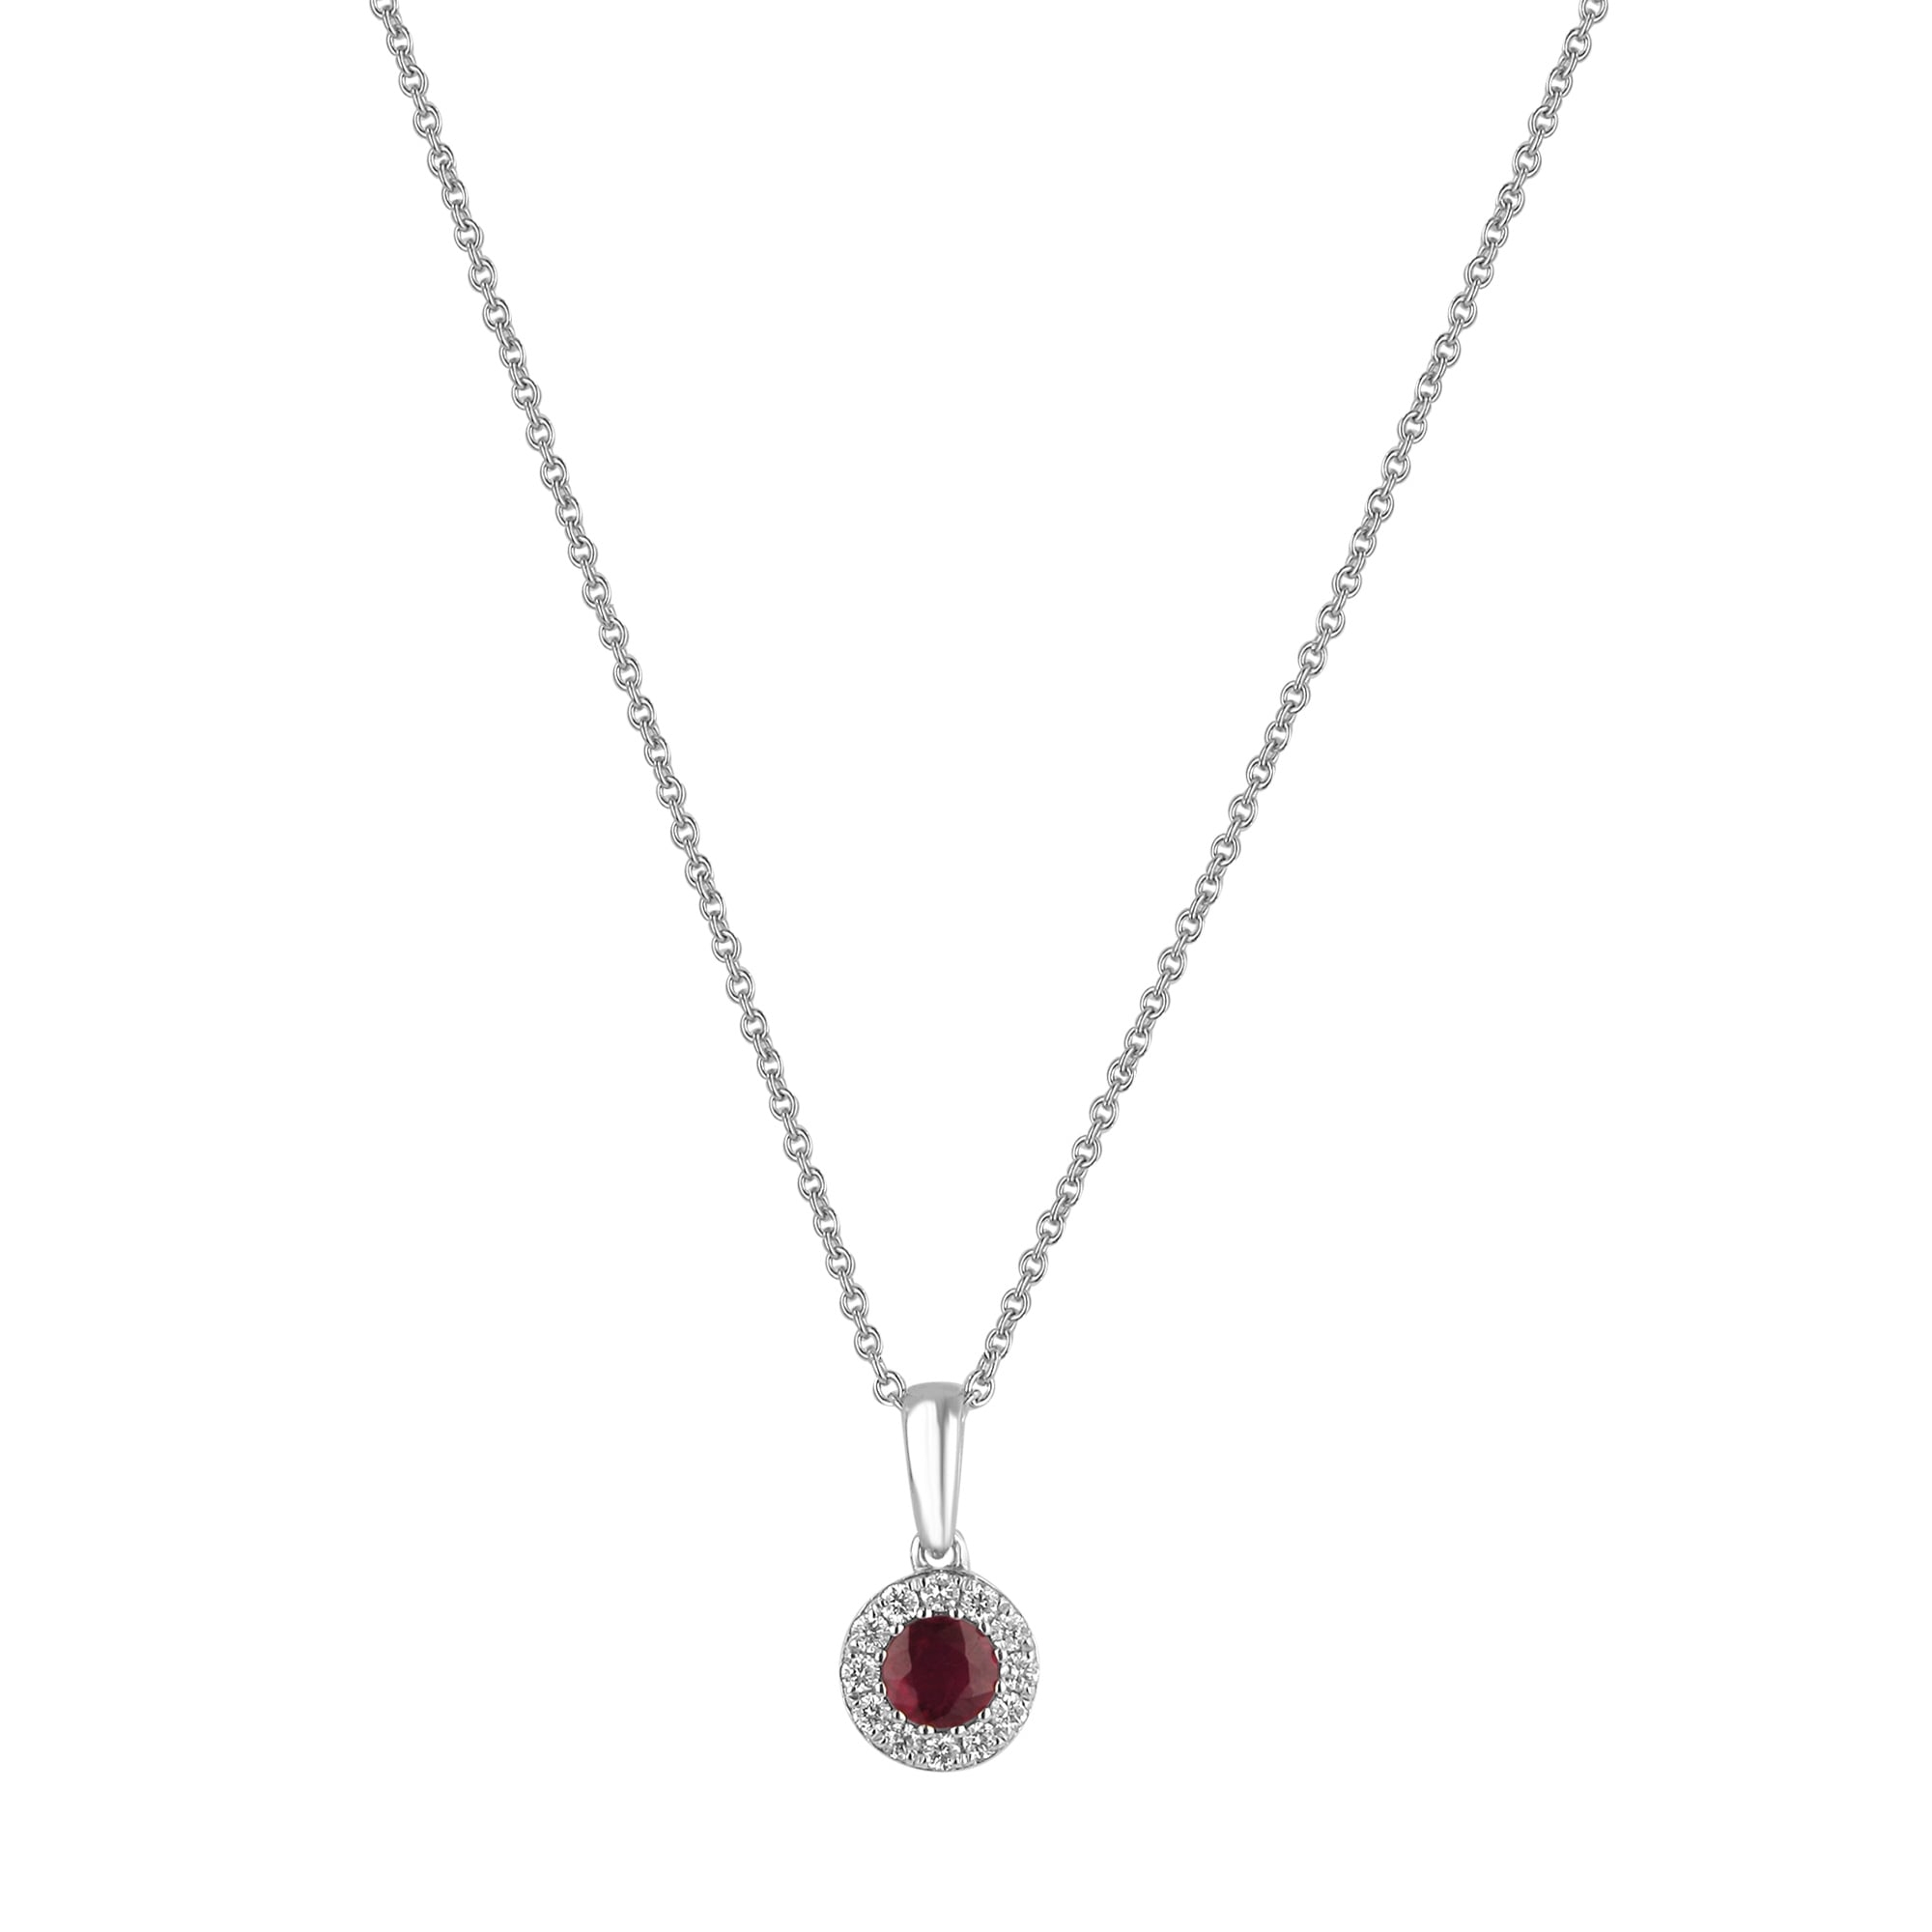 Round Ruby And Diamond Cluster Necklace With Regard To Recent Ruby And Diamond Cluster Necklaces (View 19 of 25)